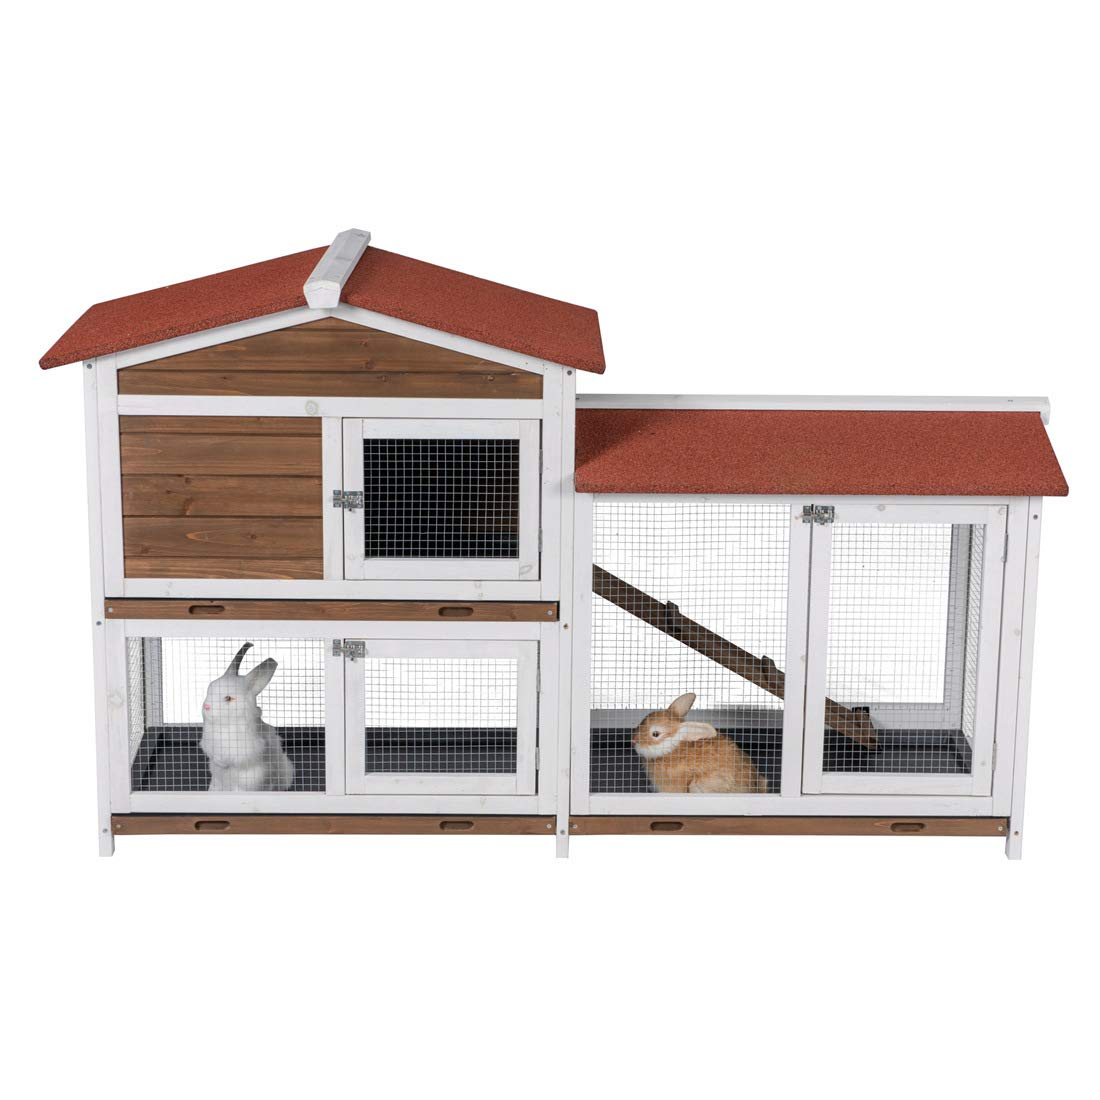 Good Life Two Floors Wooden Outdoor Indoor Roof Waterproof Bunny Hutch Rabbit Cage Guinea Pig Coop PET House for Small to Middle Animals with Stairs and 3 Cleaning Tray by GOOD LIFE USA (Image #4)